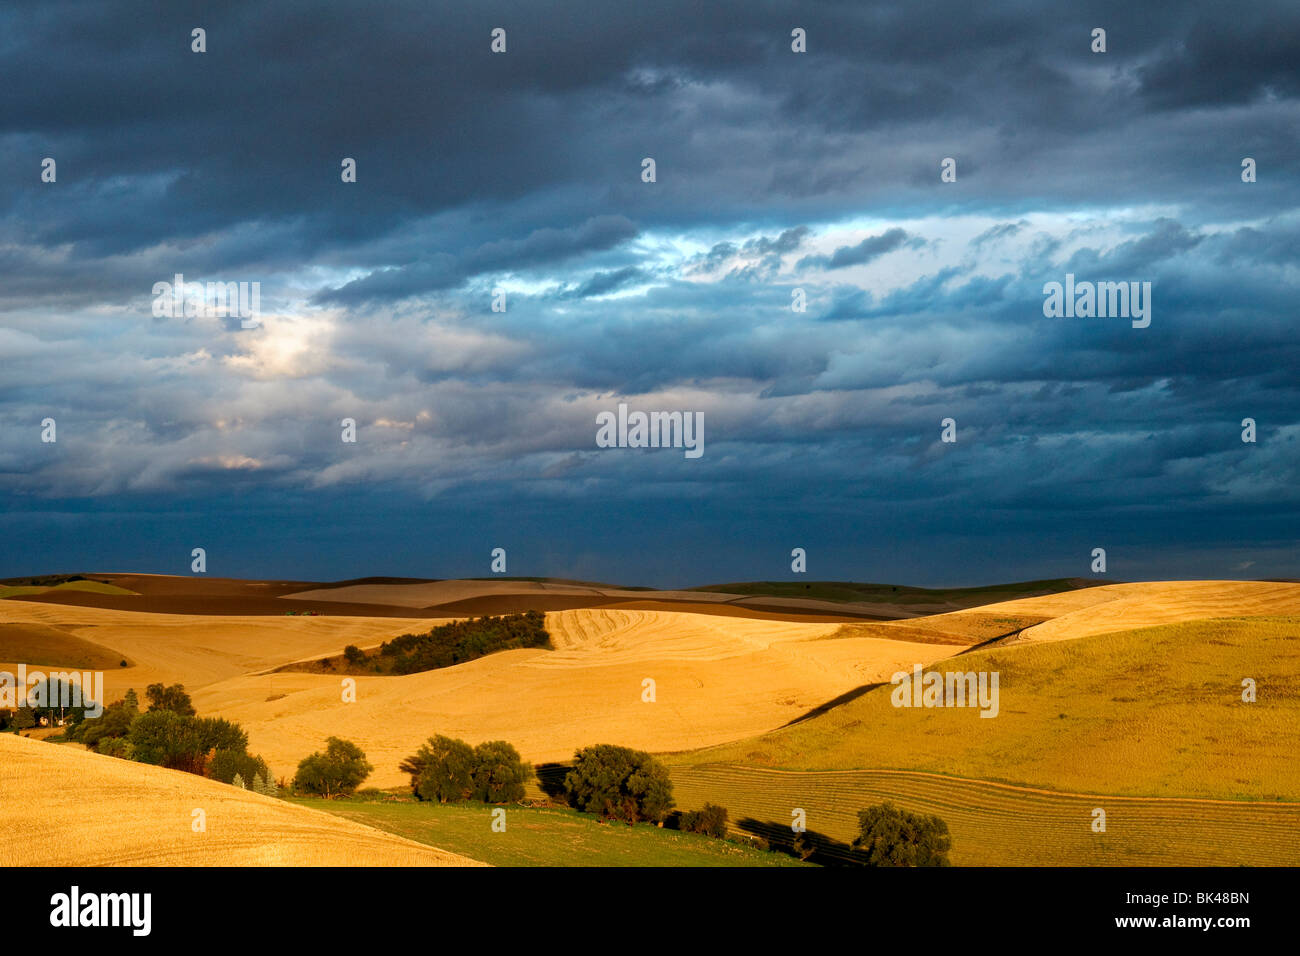 Sunlight breaks through the clouds to light up mature wheat fields in the Palouse region of Washington - Stock Image